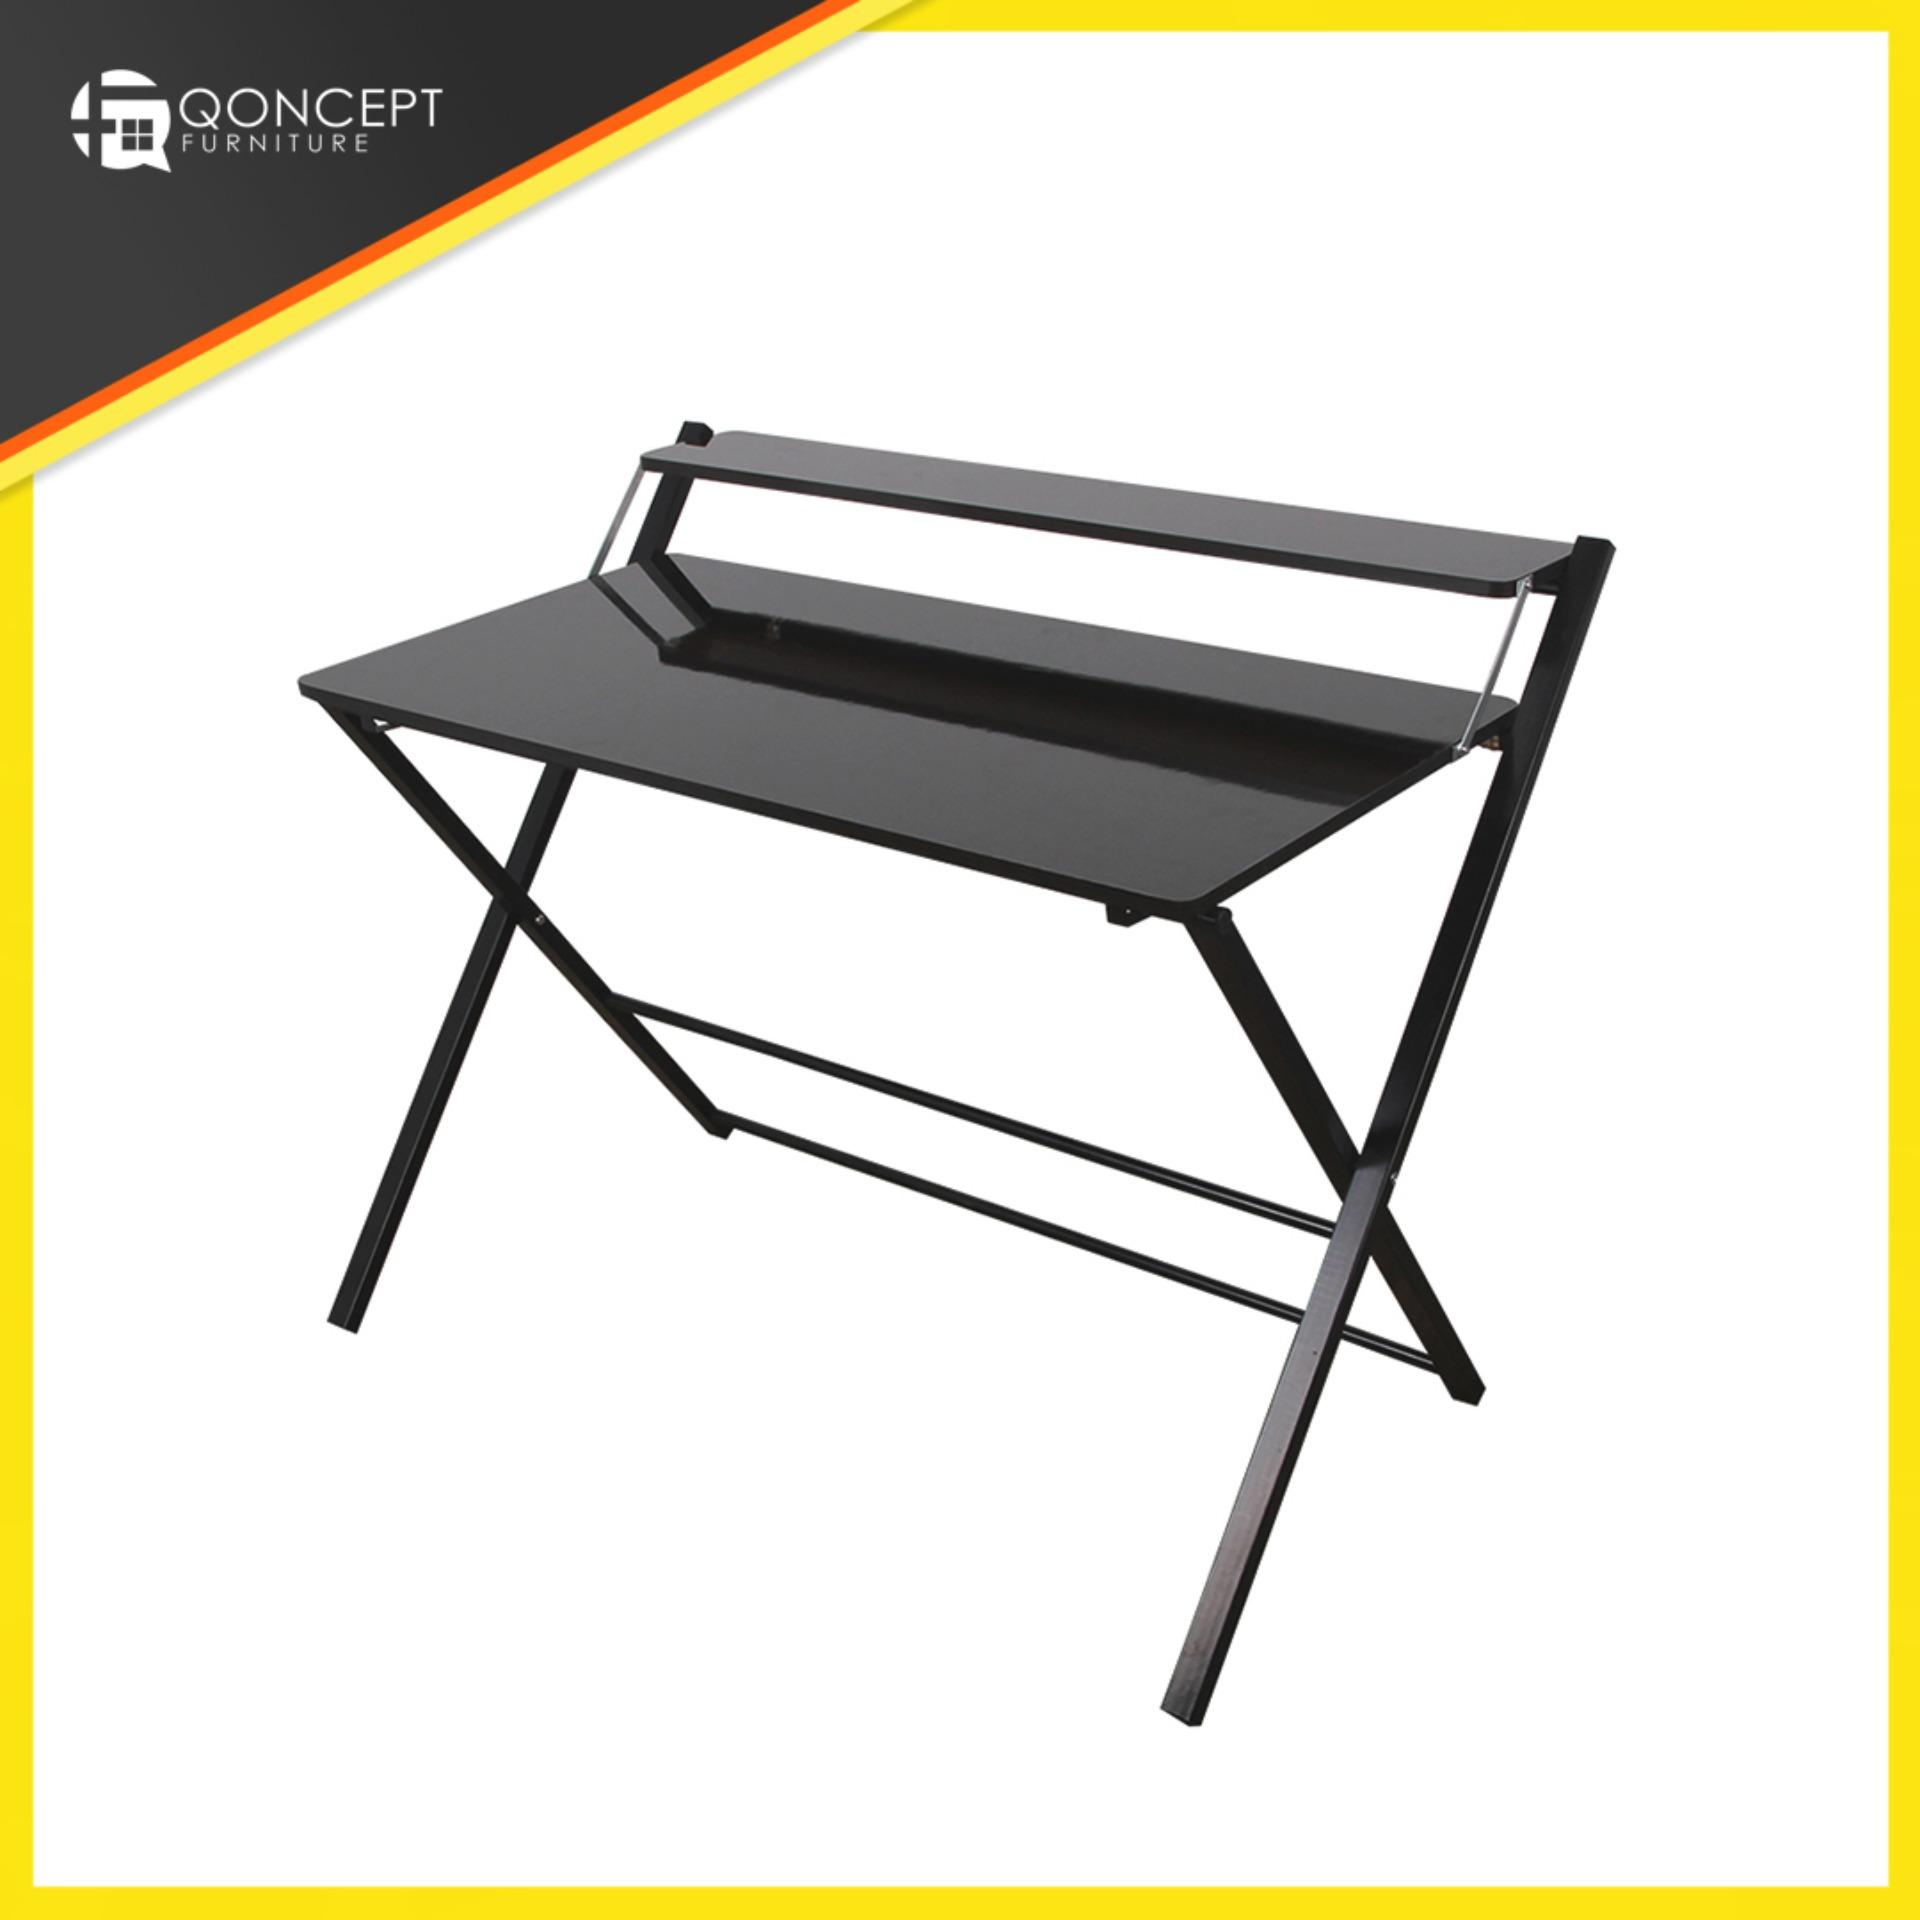 Qoncept Furniture Foldable Office Table 100x51